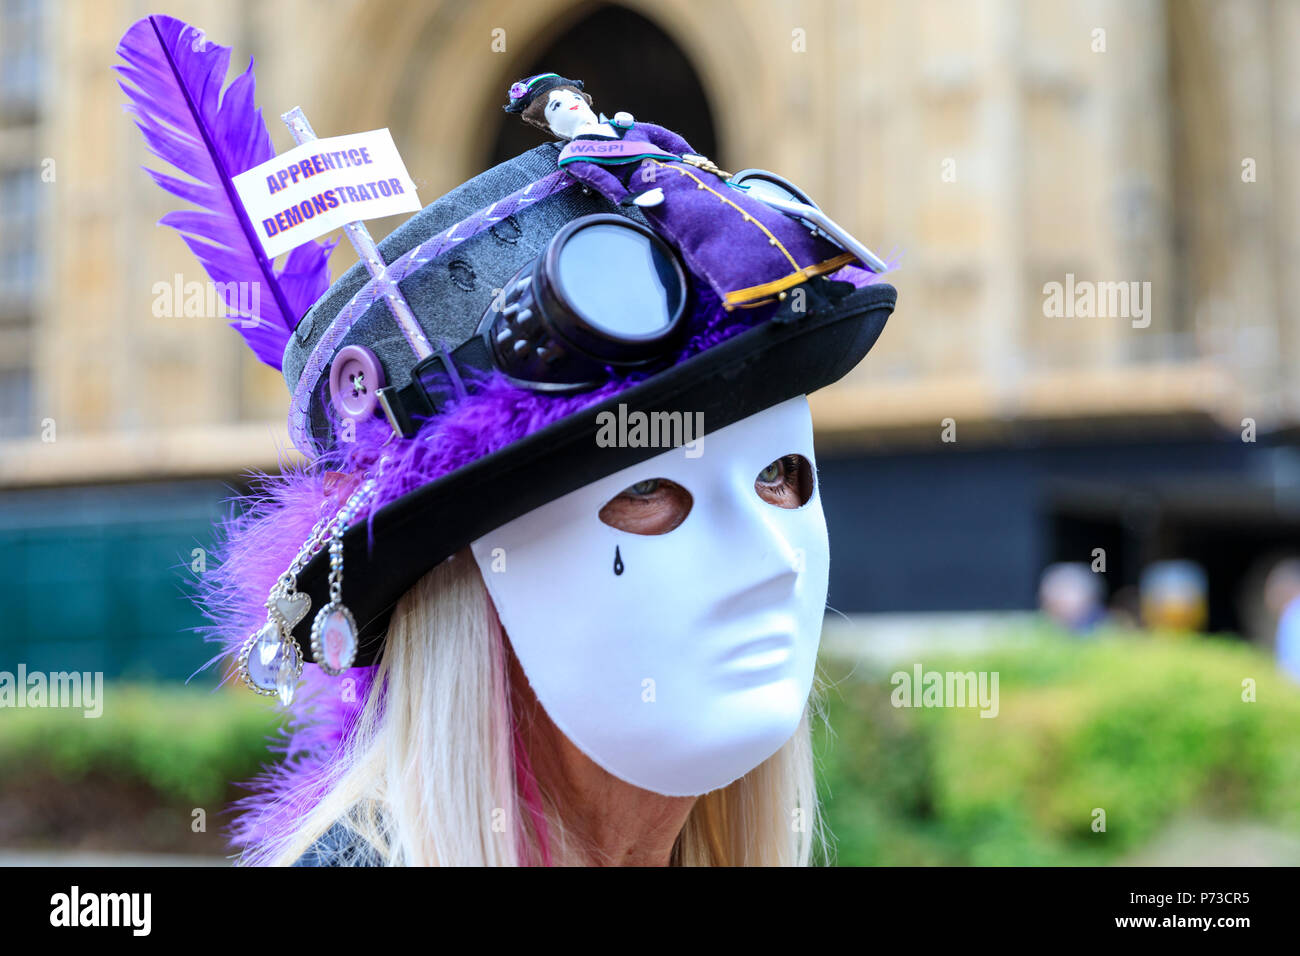 Westminster, London, 4th July 2018. WASPI, Women Against State Pension Inequality have organised a protest highlighting the issues around 3.8m women, mostly born in the 1950, will not receive their state pension aged 60. The Campaign aims to reach a transitional agreement for these women. Credit: Imageplotter News and Sports/Alamy Live News - Stock Image